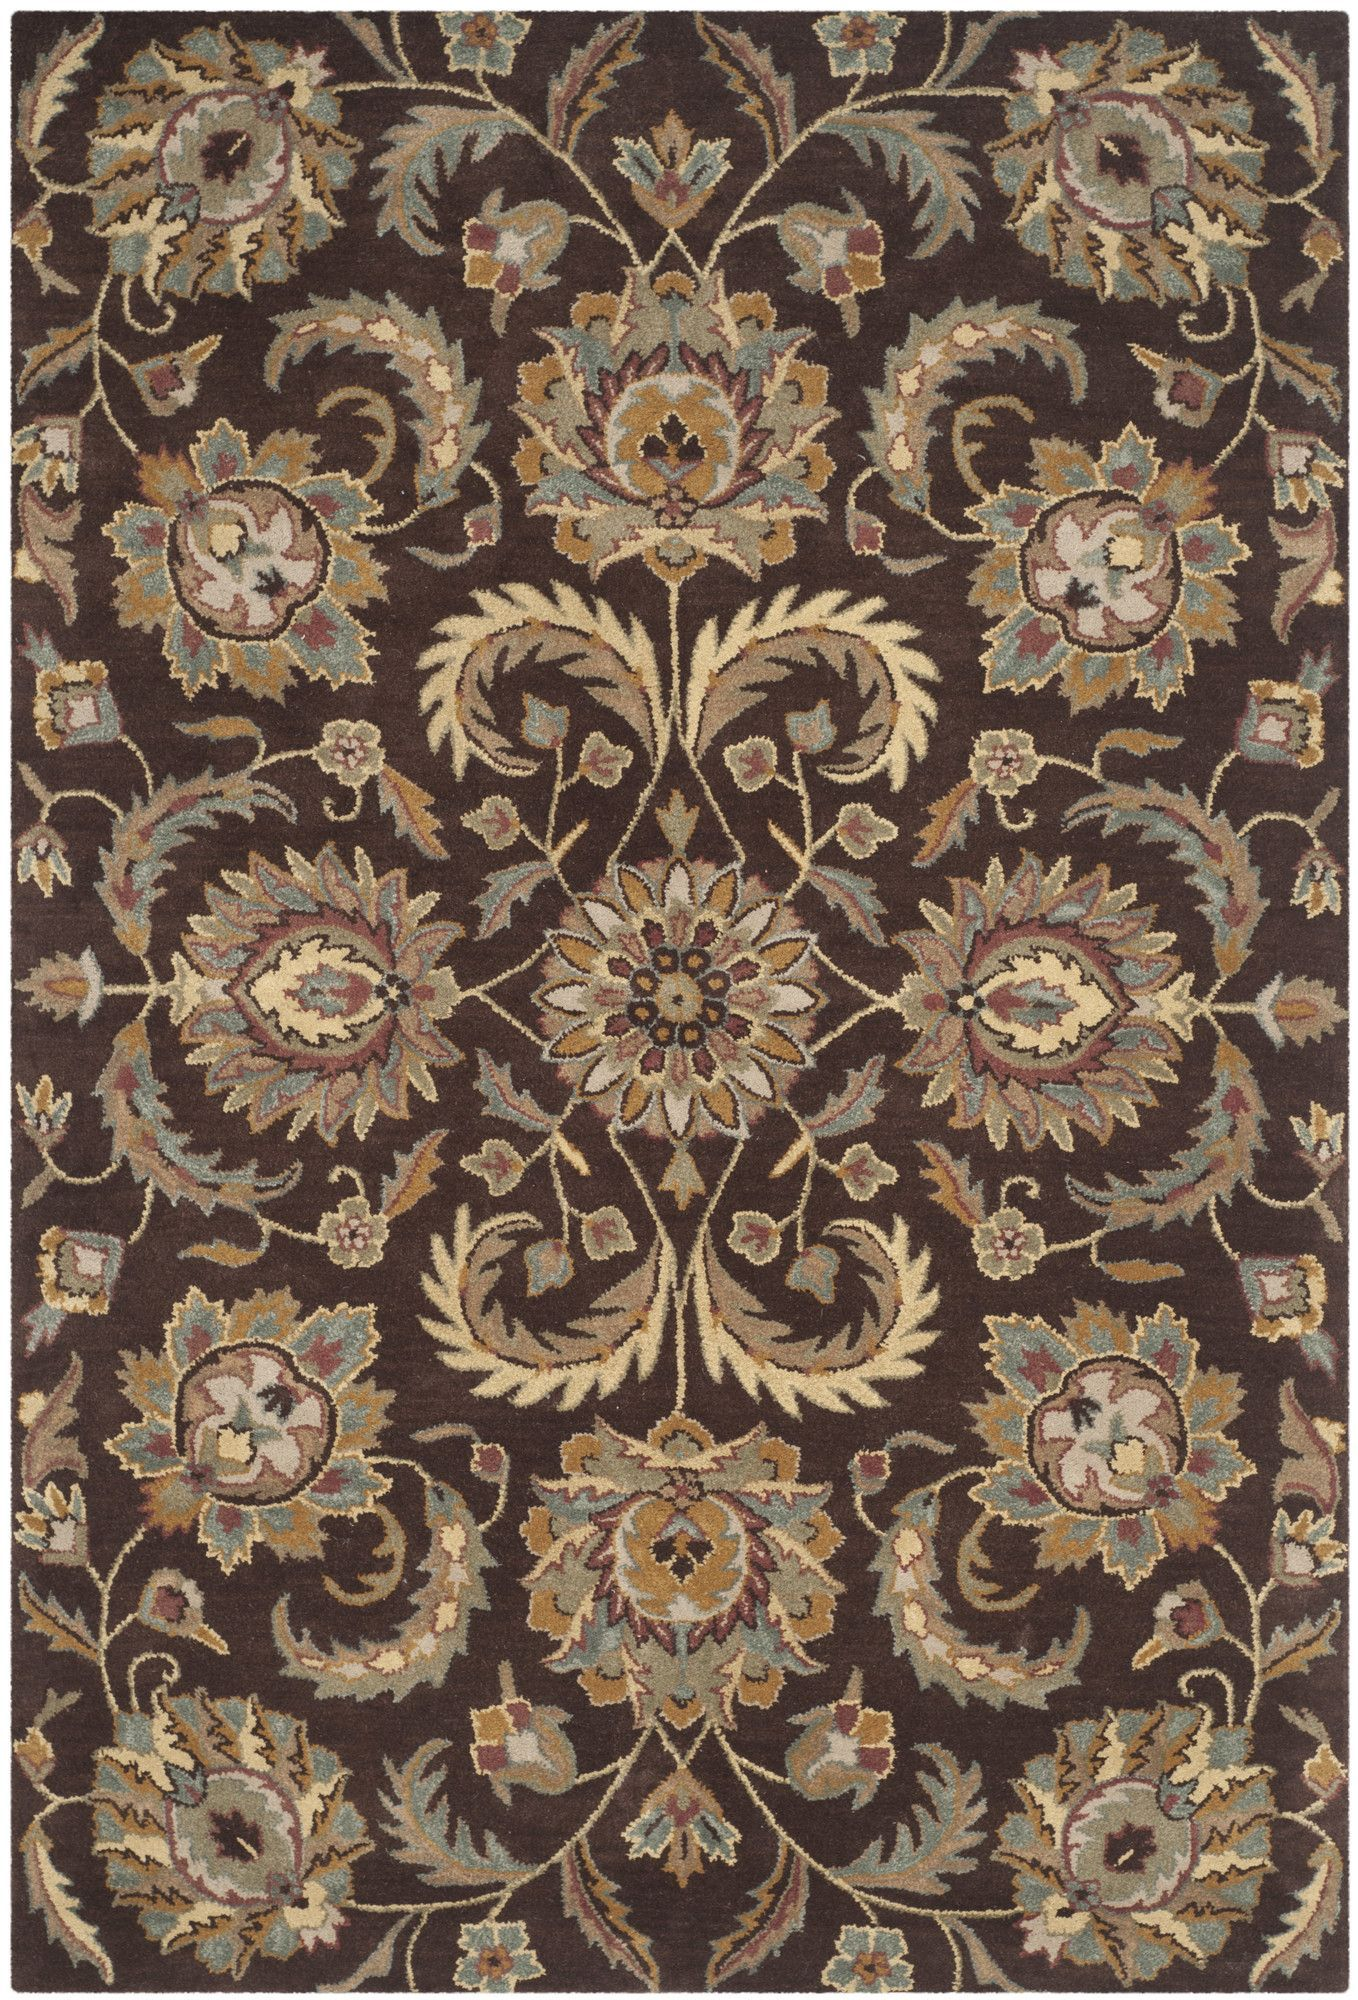 Tressler Handmade Tufted Wool Brown Gold Area Rug Rugs Gold Rug Traditional Rugs